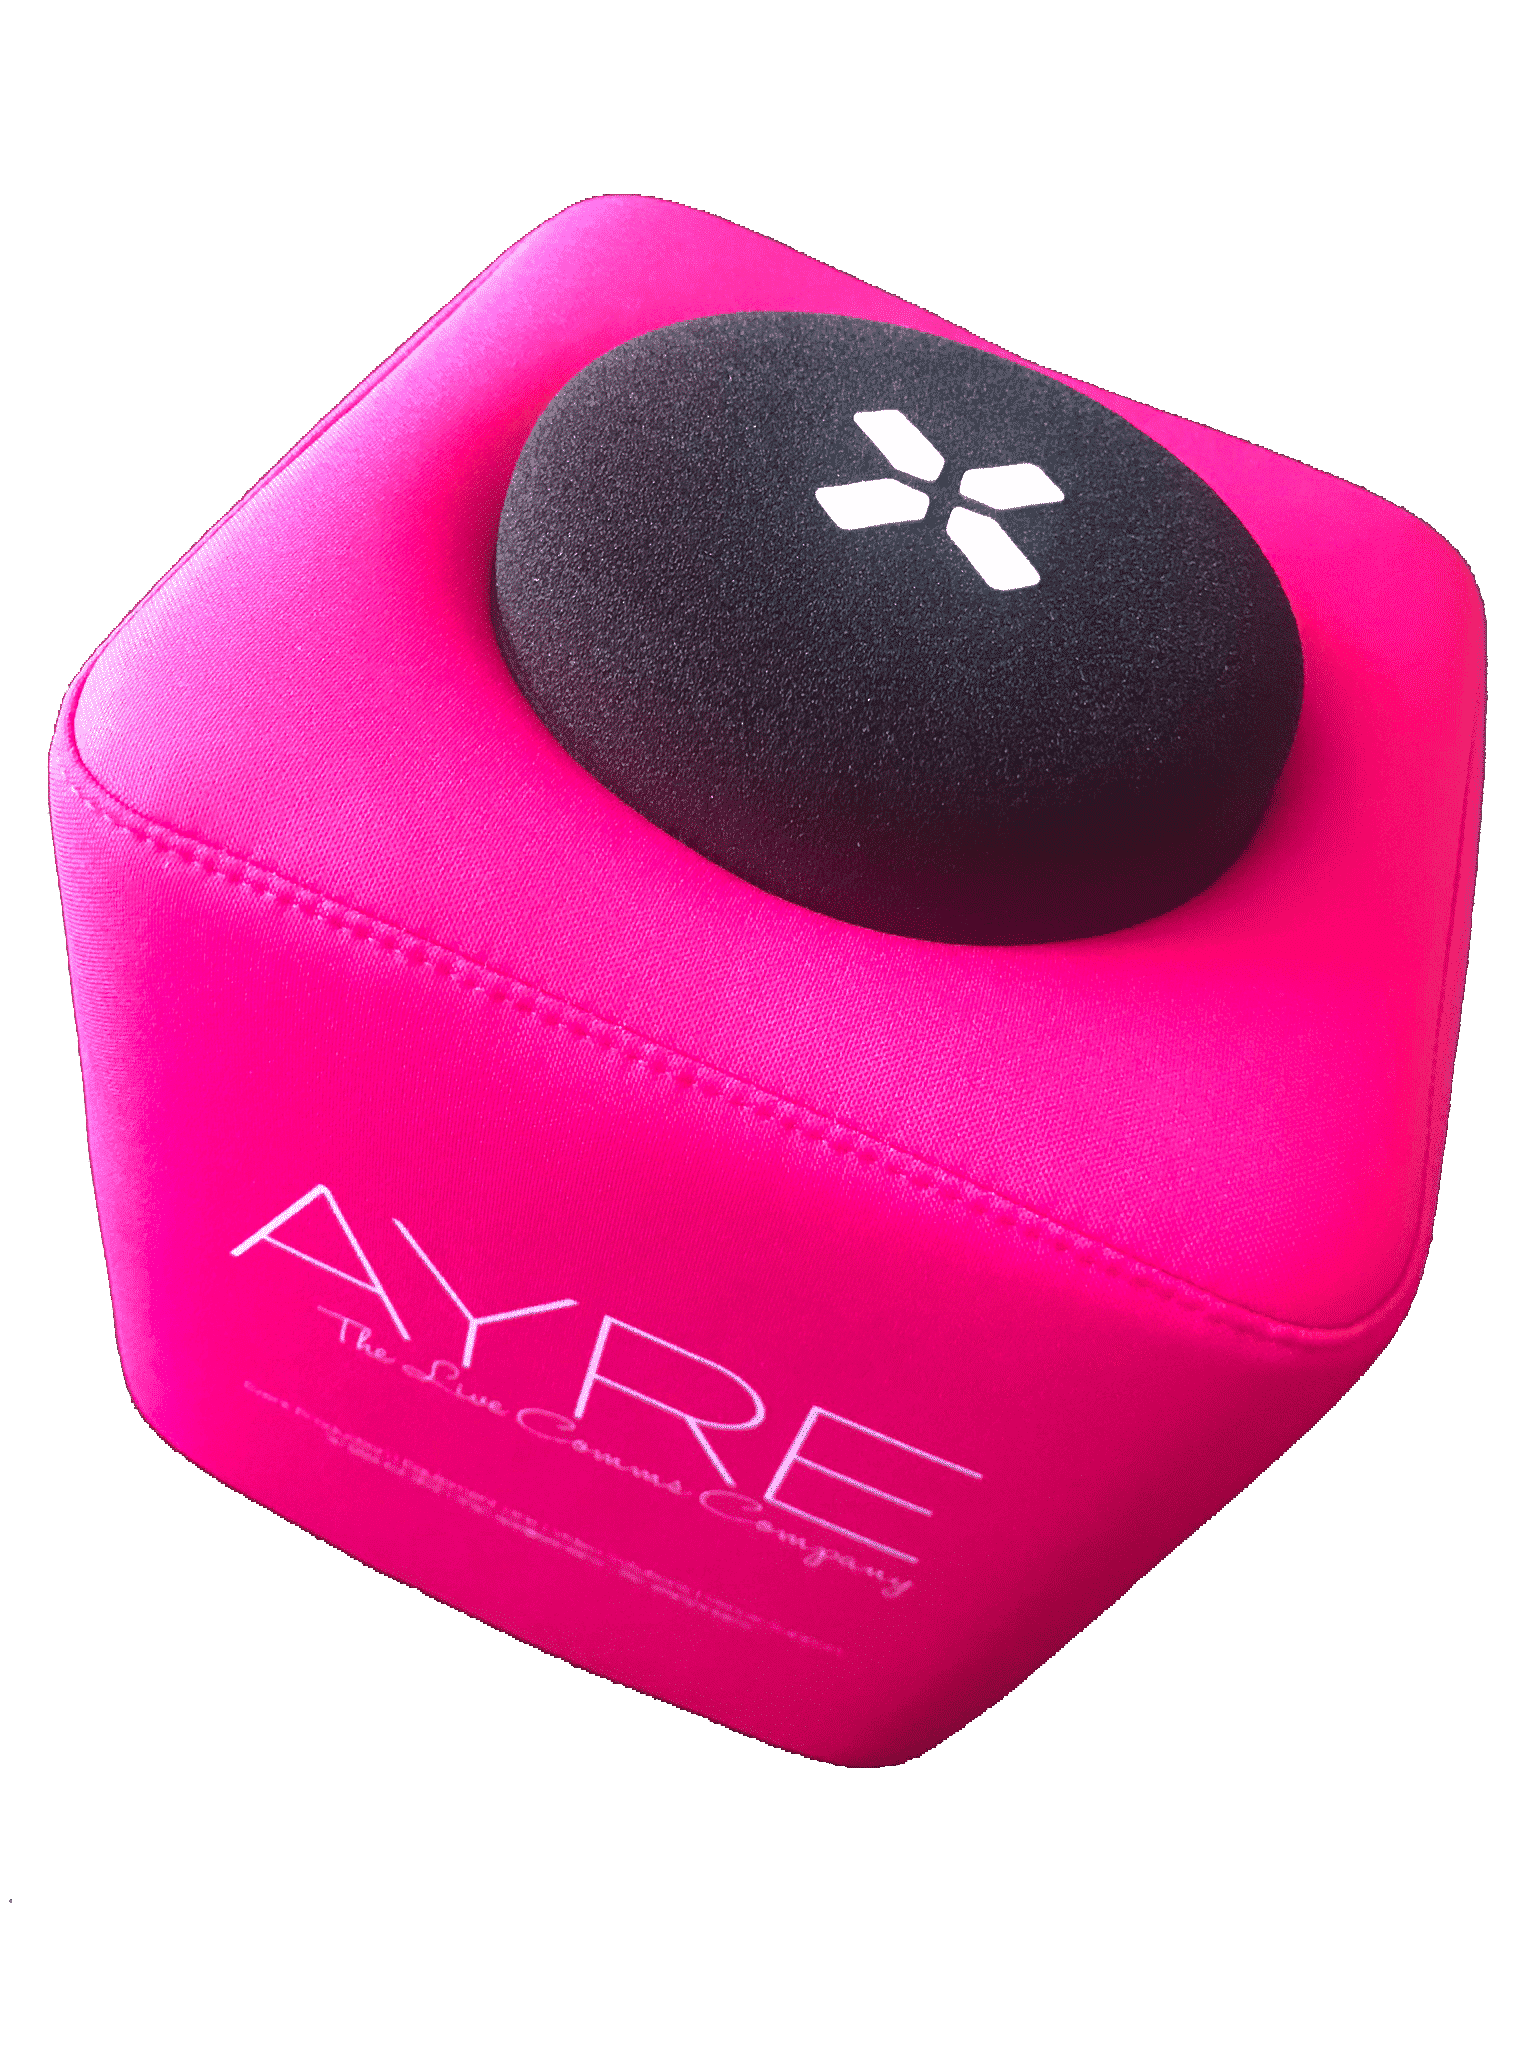 AYRE branded Catchbox microphone